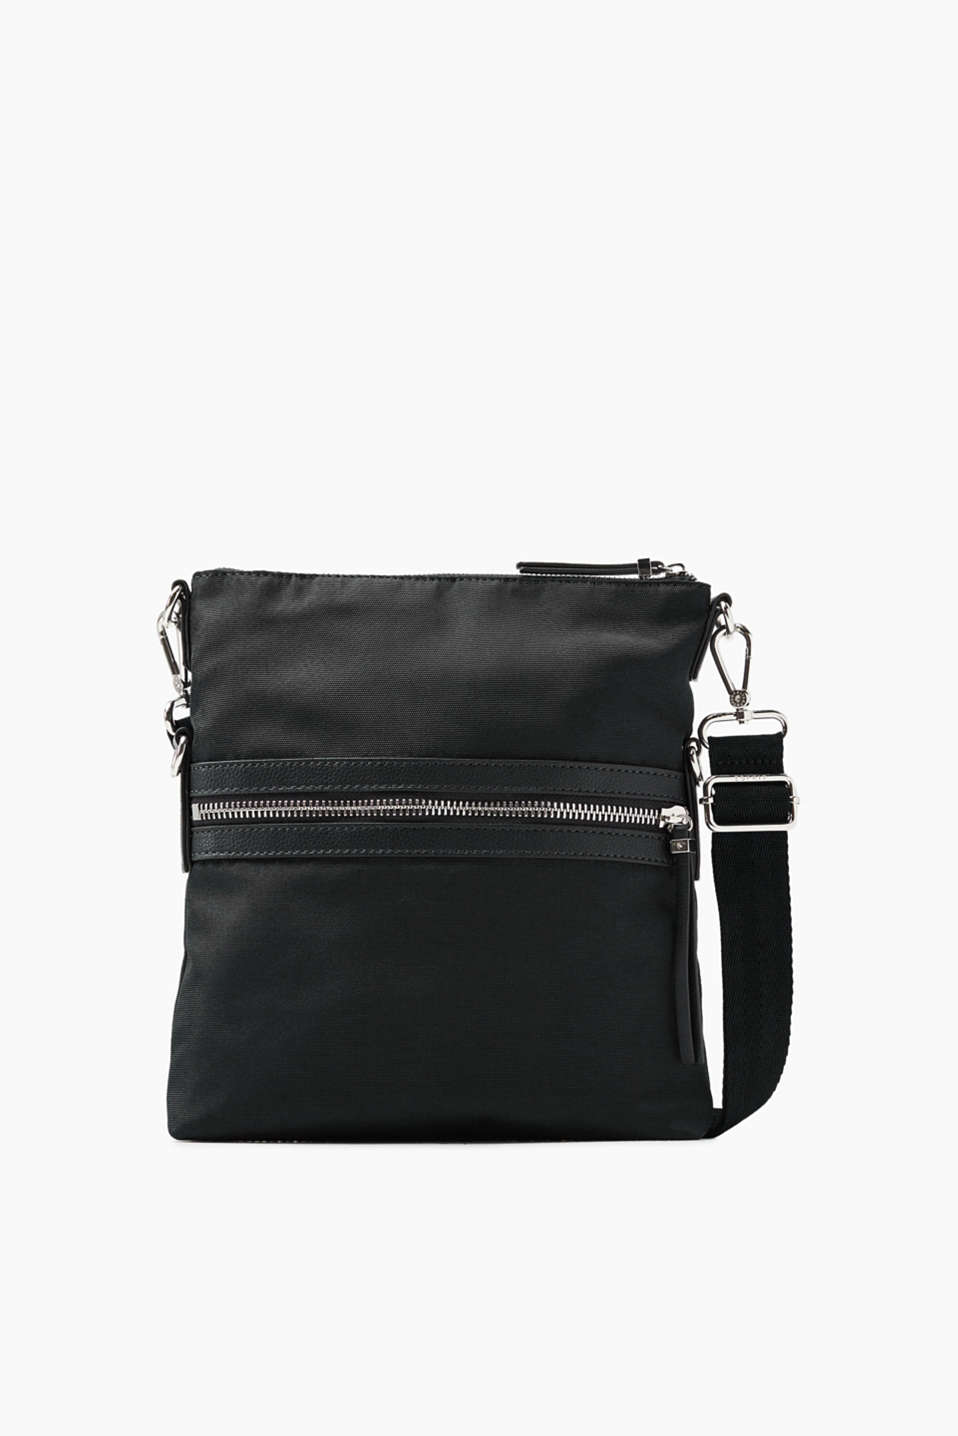 Small shoulder bag made of robust fabric with a grainy texture, features a length-adjustable shoulder strap